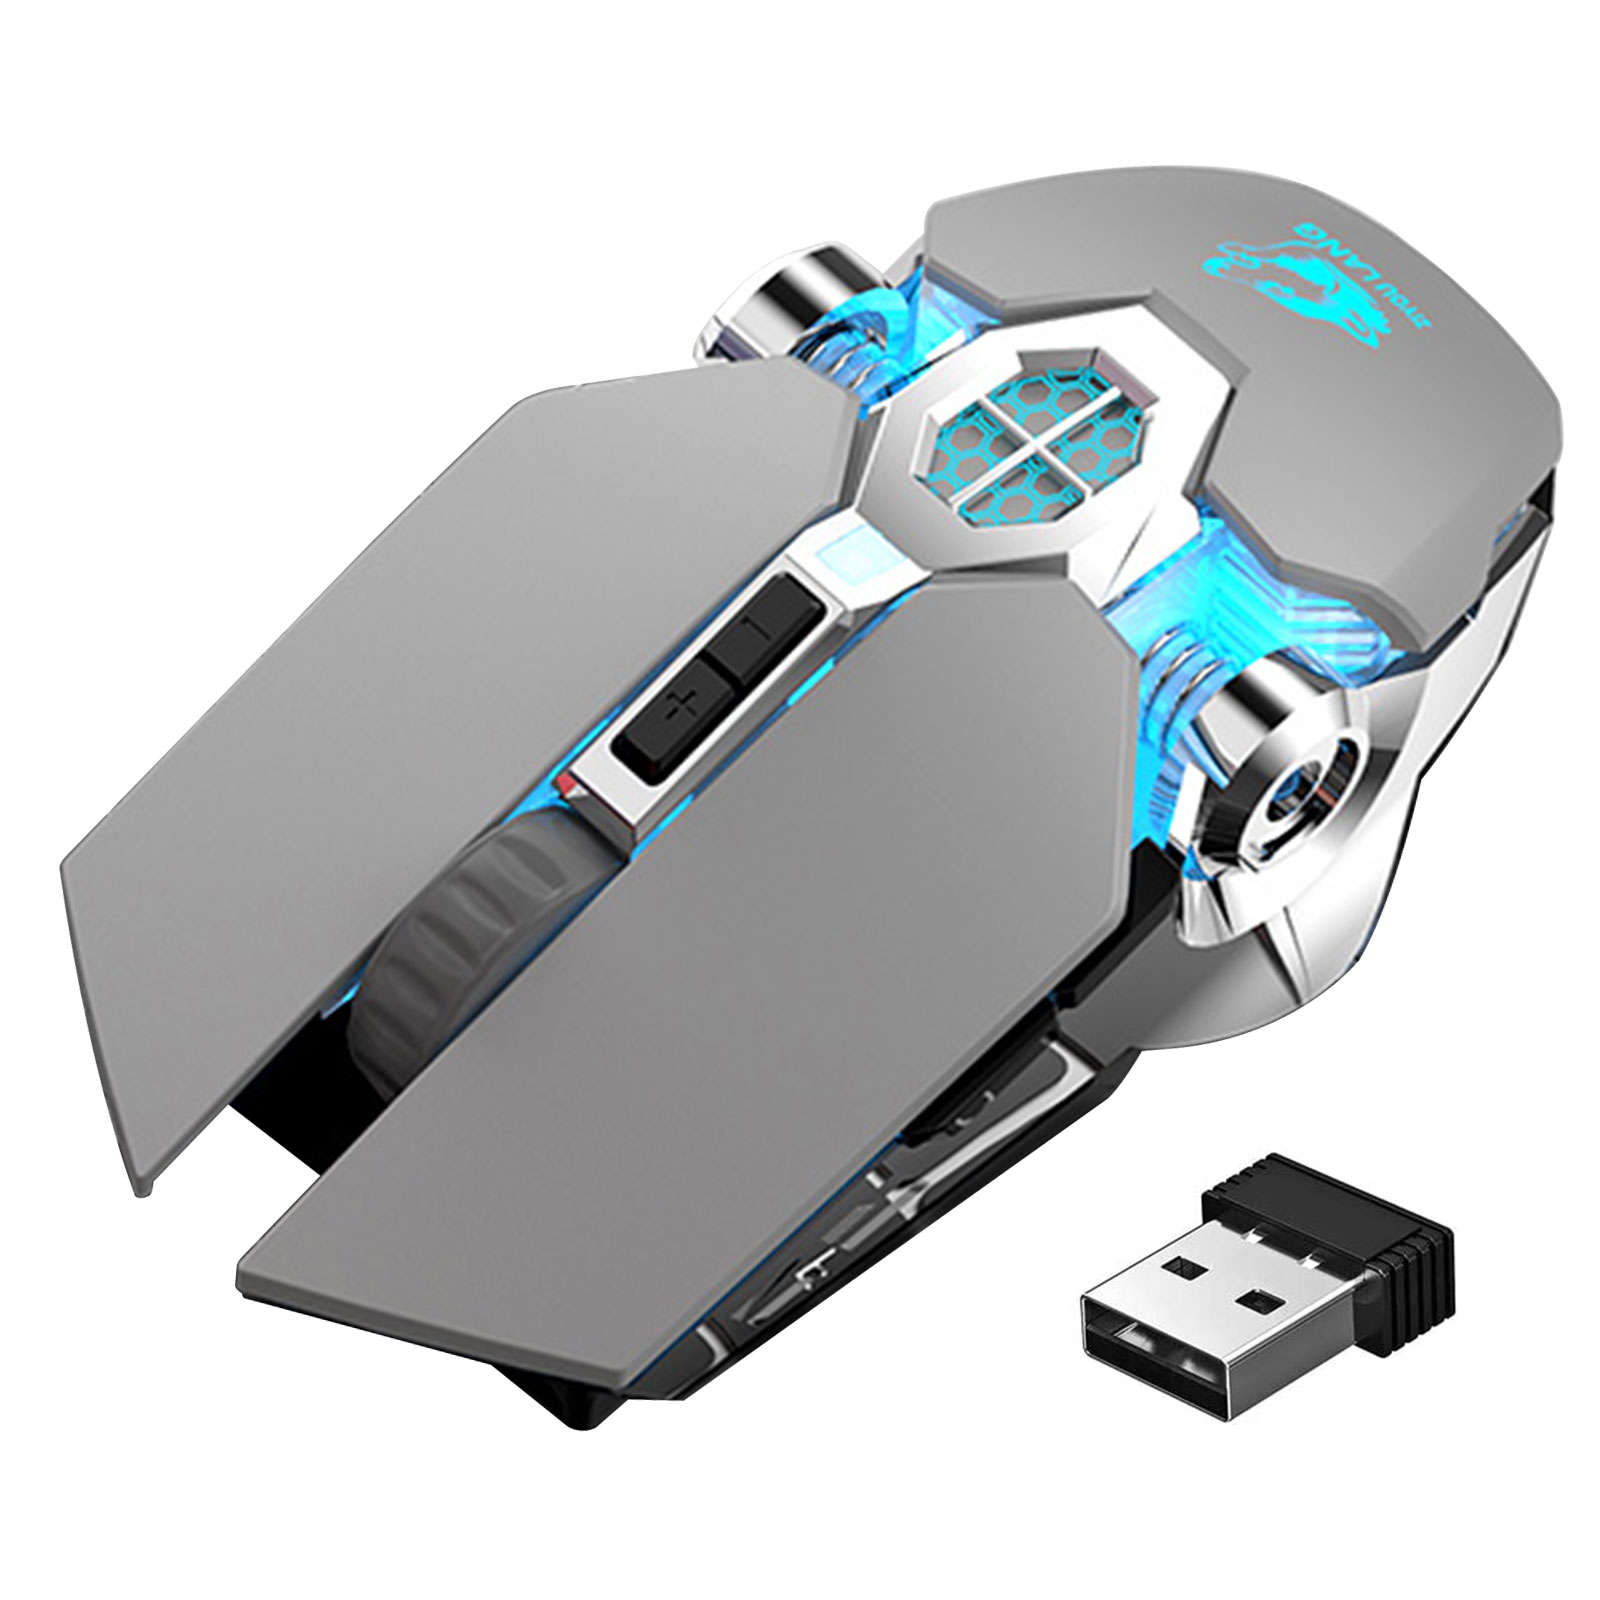 4 Adjustable DPI Power Saving Mode Wireless Mouse for Laptop//PC//Notebook Wireless Gaming Mouse Rechargeable Computer Gaming Mouse Unique Silent Click with 7 Breathing Led Light